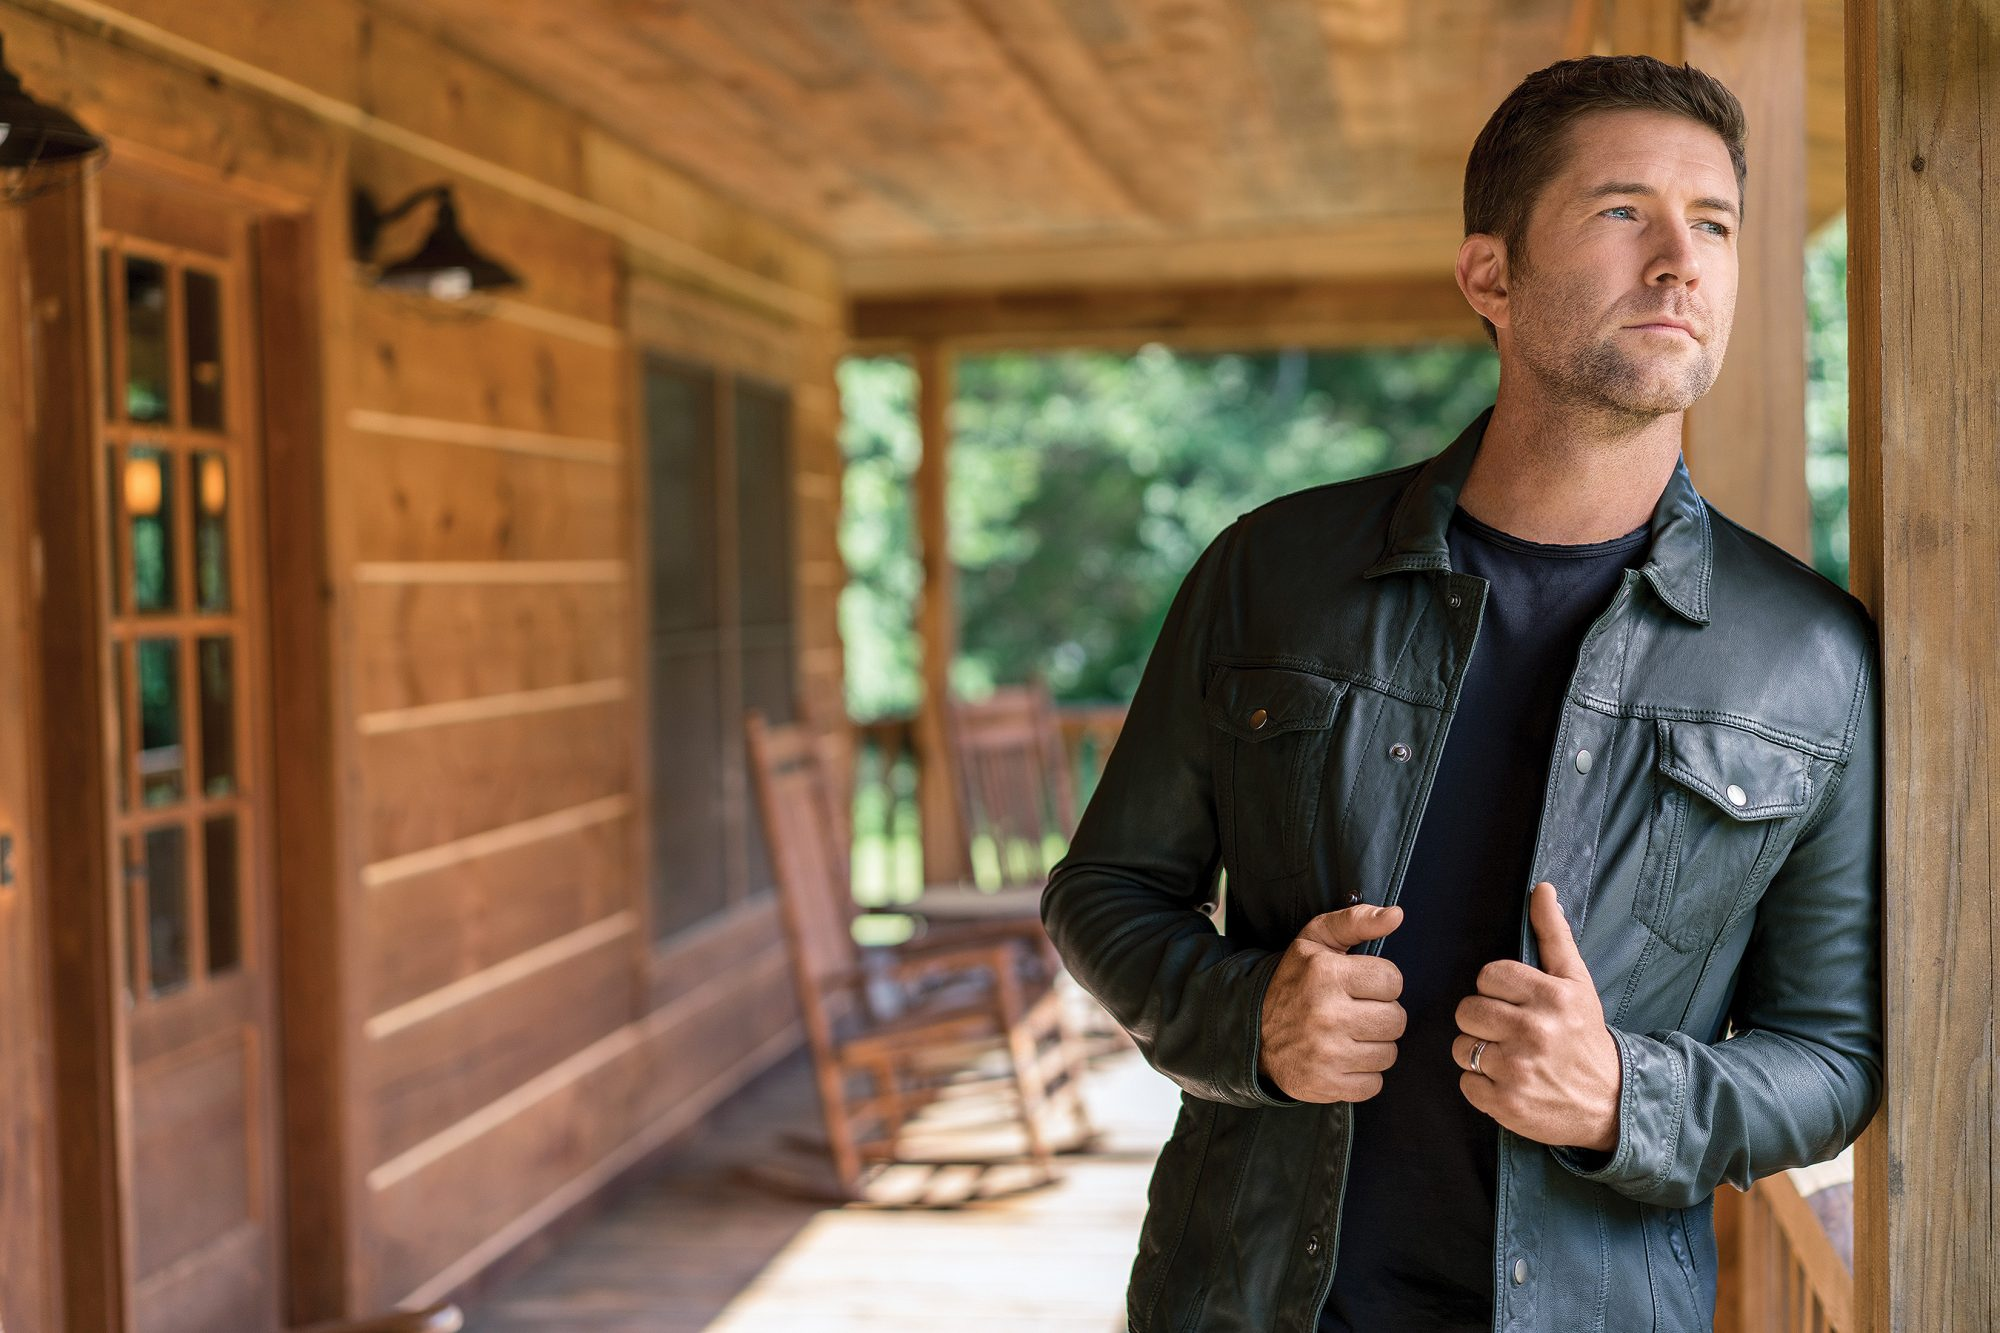 Josh Turner's Tour Bus Carrying Road Crew Launches Off Cliff, Leaving 7 Injured and 1 Dead